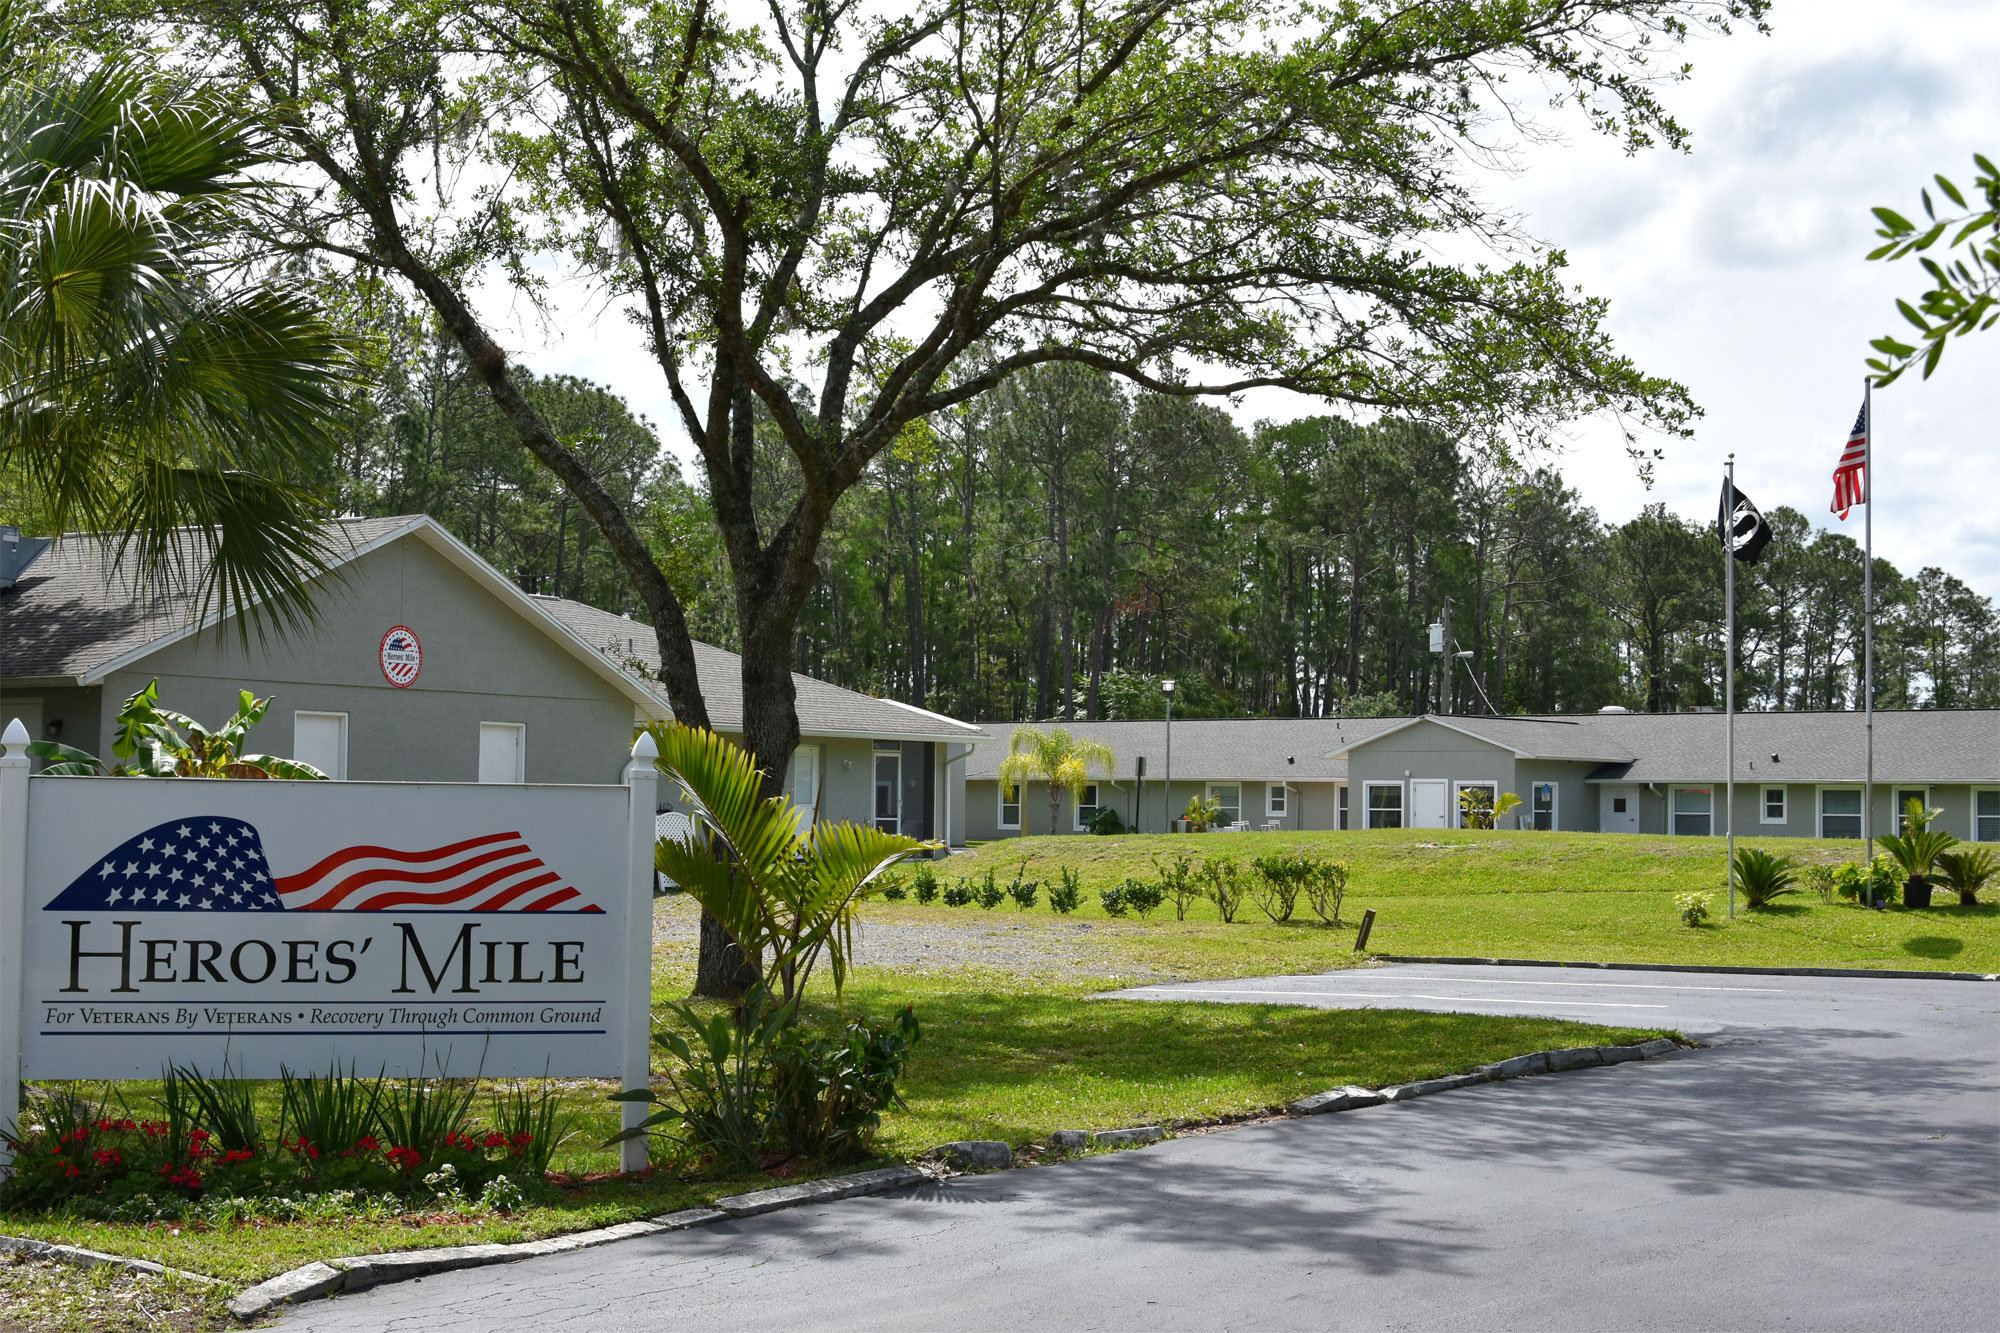 Heroes Mile recovery facility location